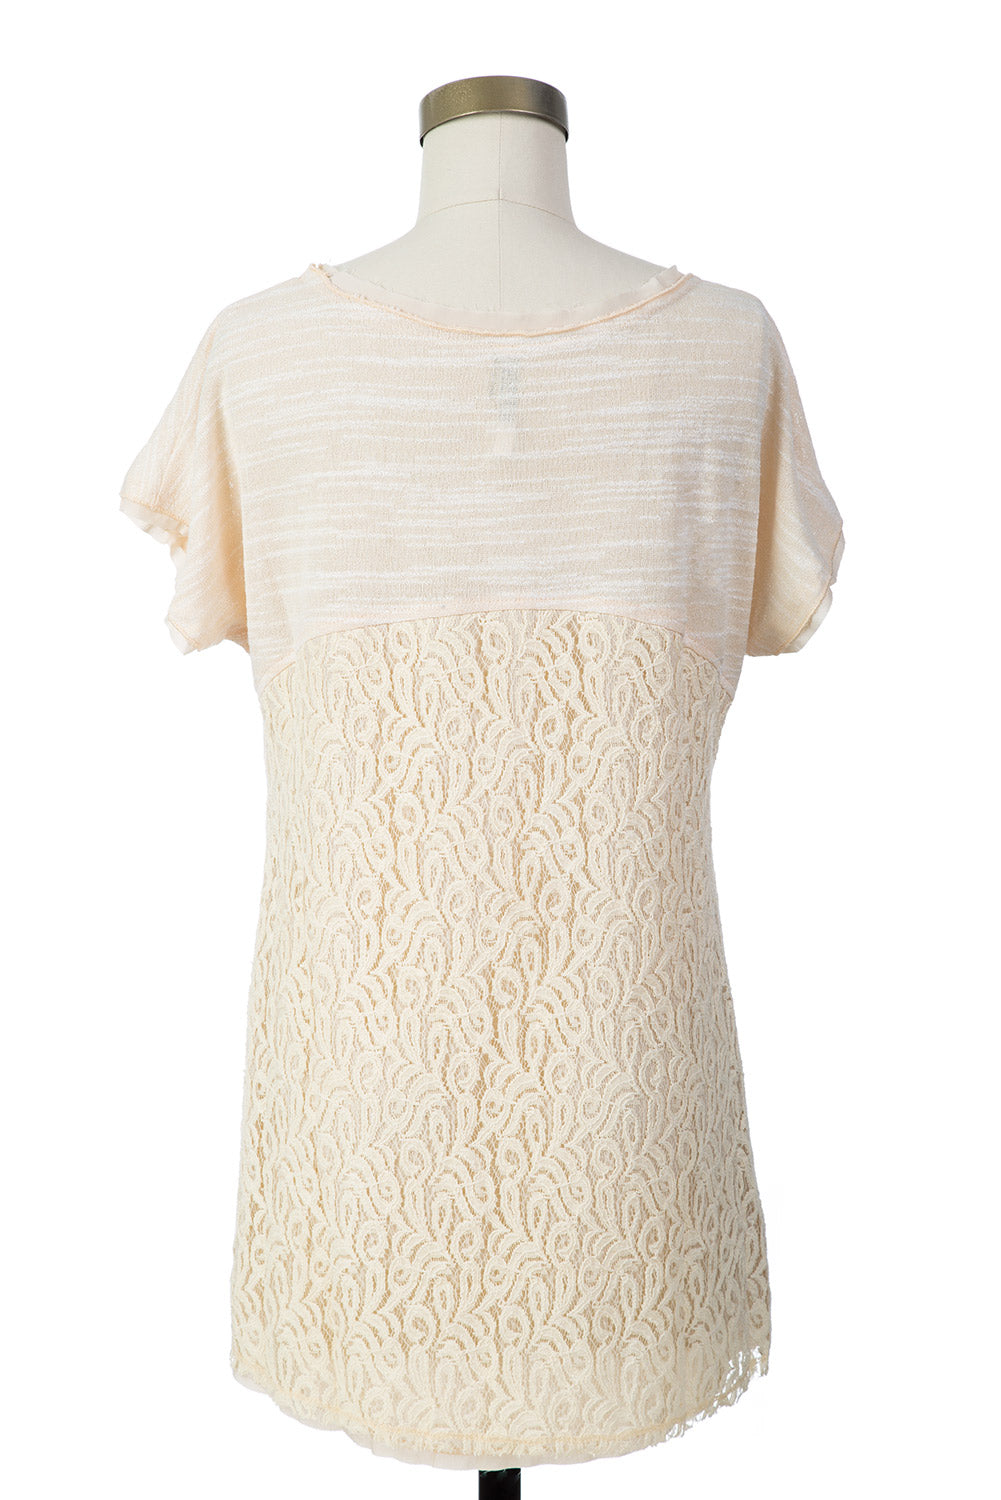 Type 3 Raw Lace Top